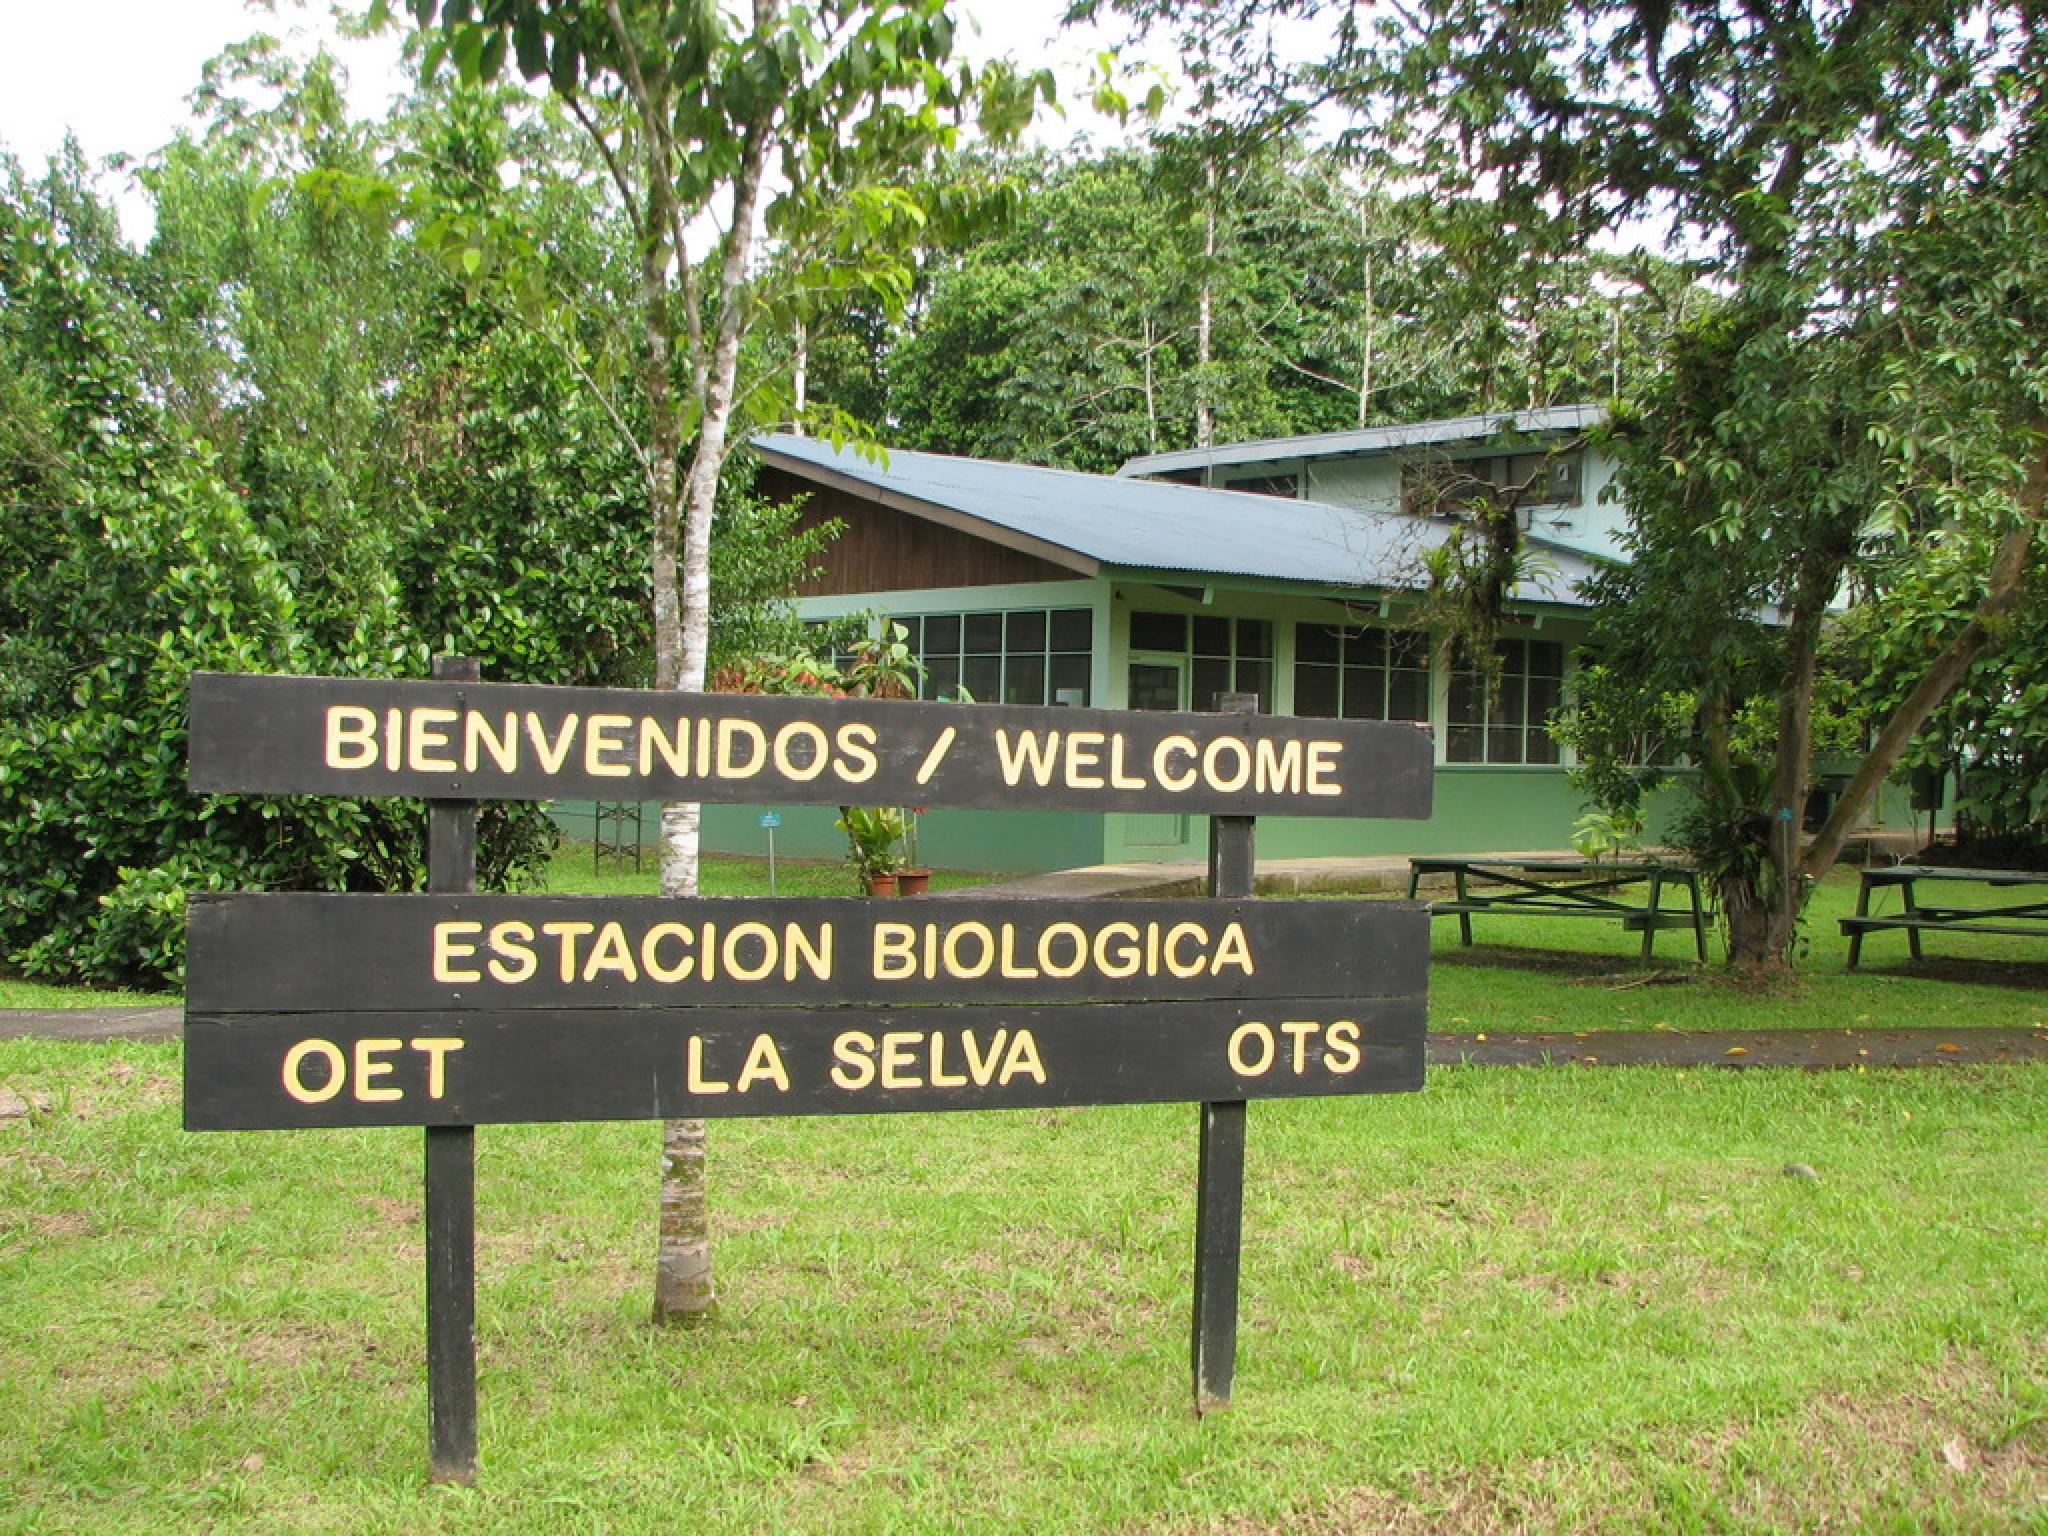 La Selva Biological Station Costa Rica 2020 Travel Guide Anywhere